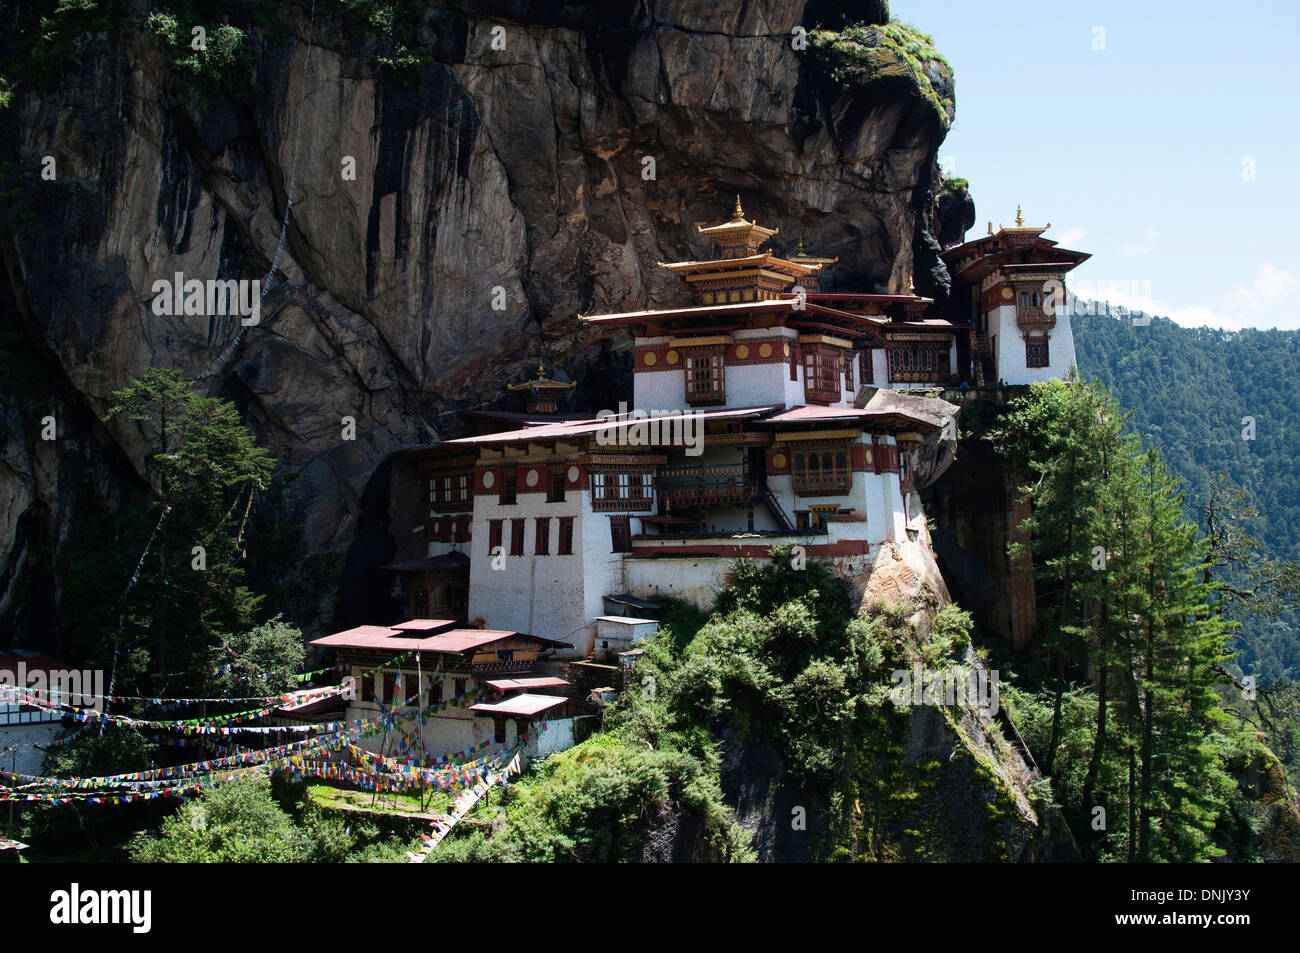 Taktsang monastery in Paro, Bhutan. Also known as Tiger's Nest - Stock Image